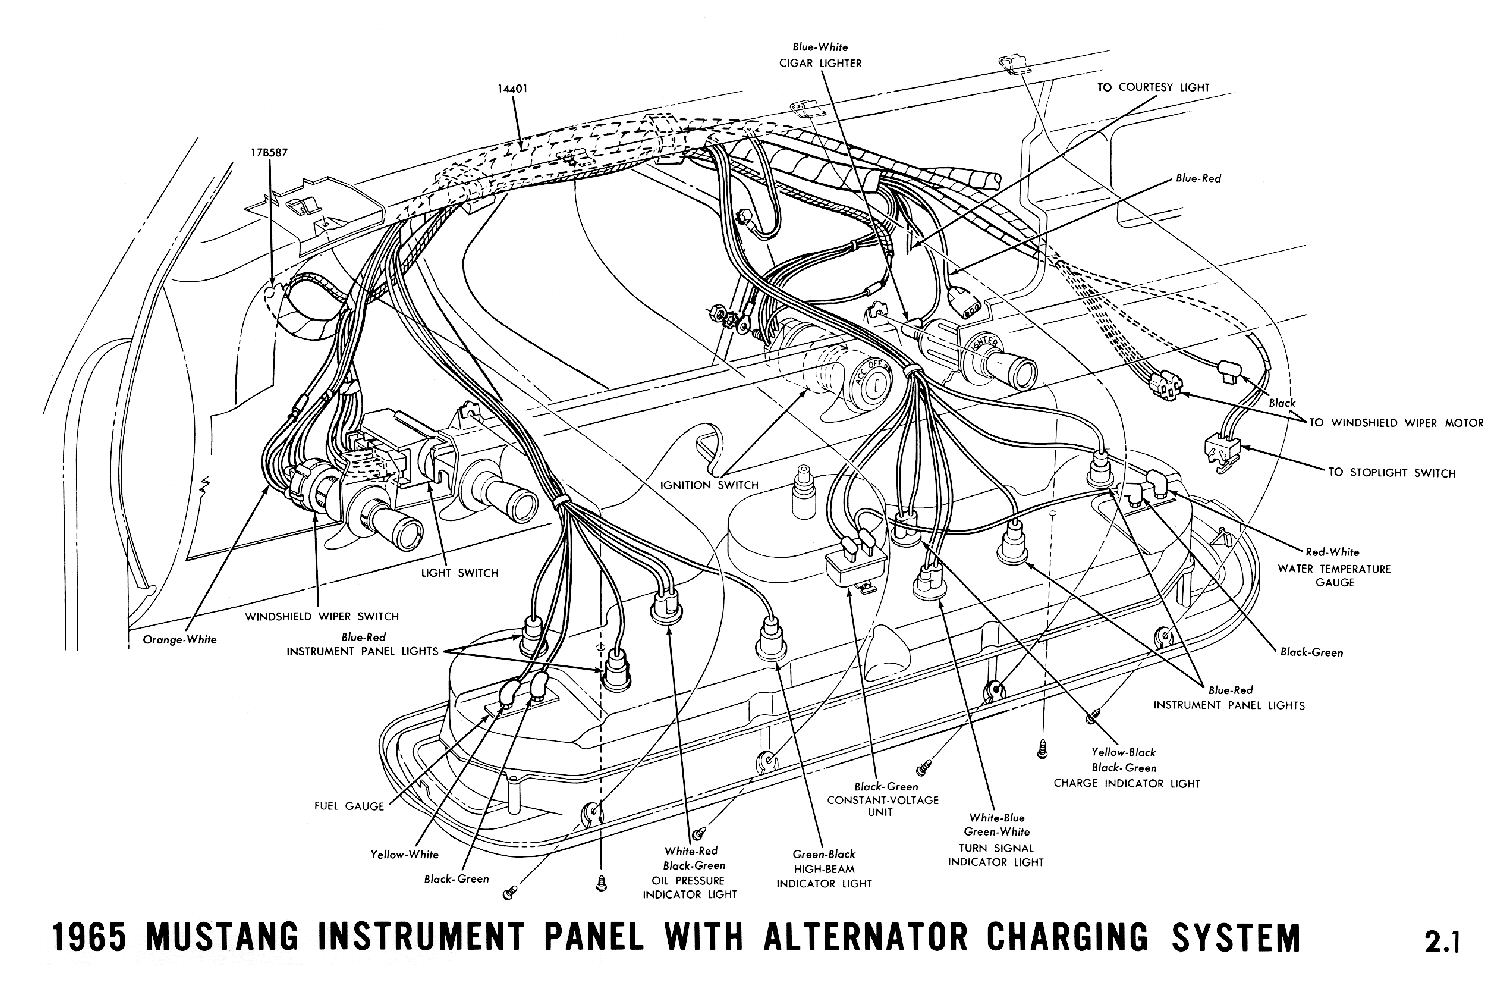 1965a 1965 mustang wiring diagrams average joe restoration 1965 ford mustang wiring diagrams at mr168.co